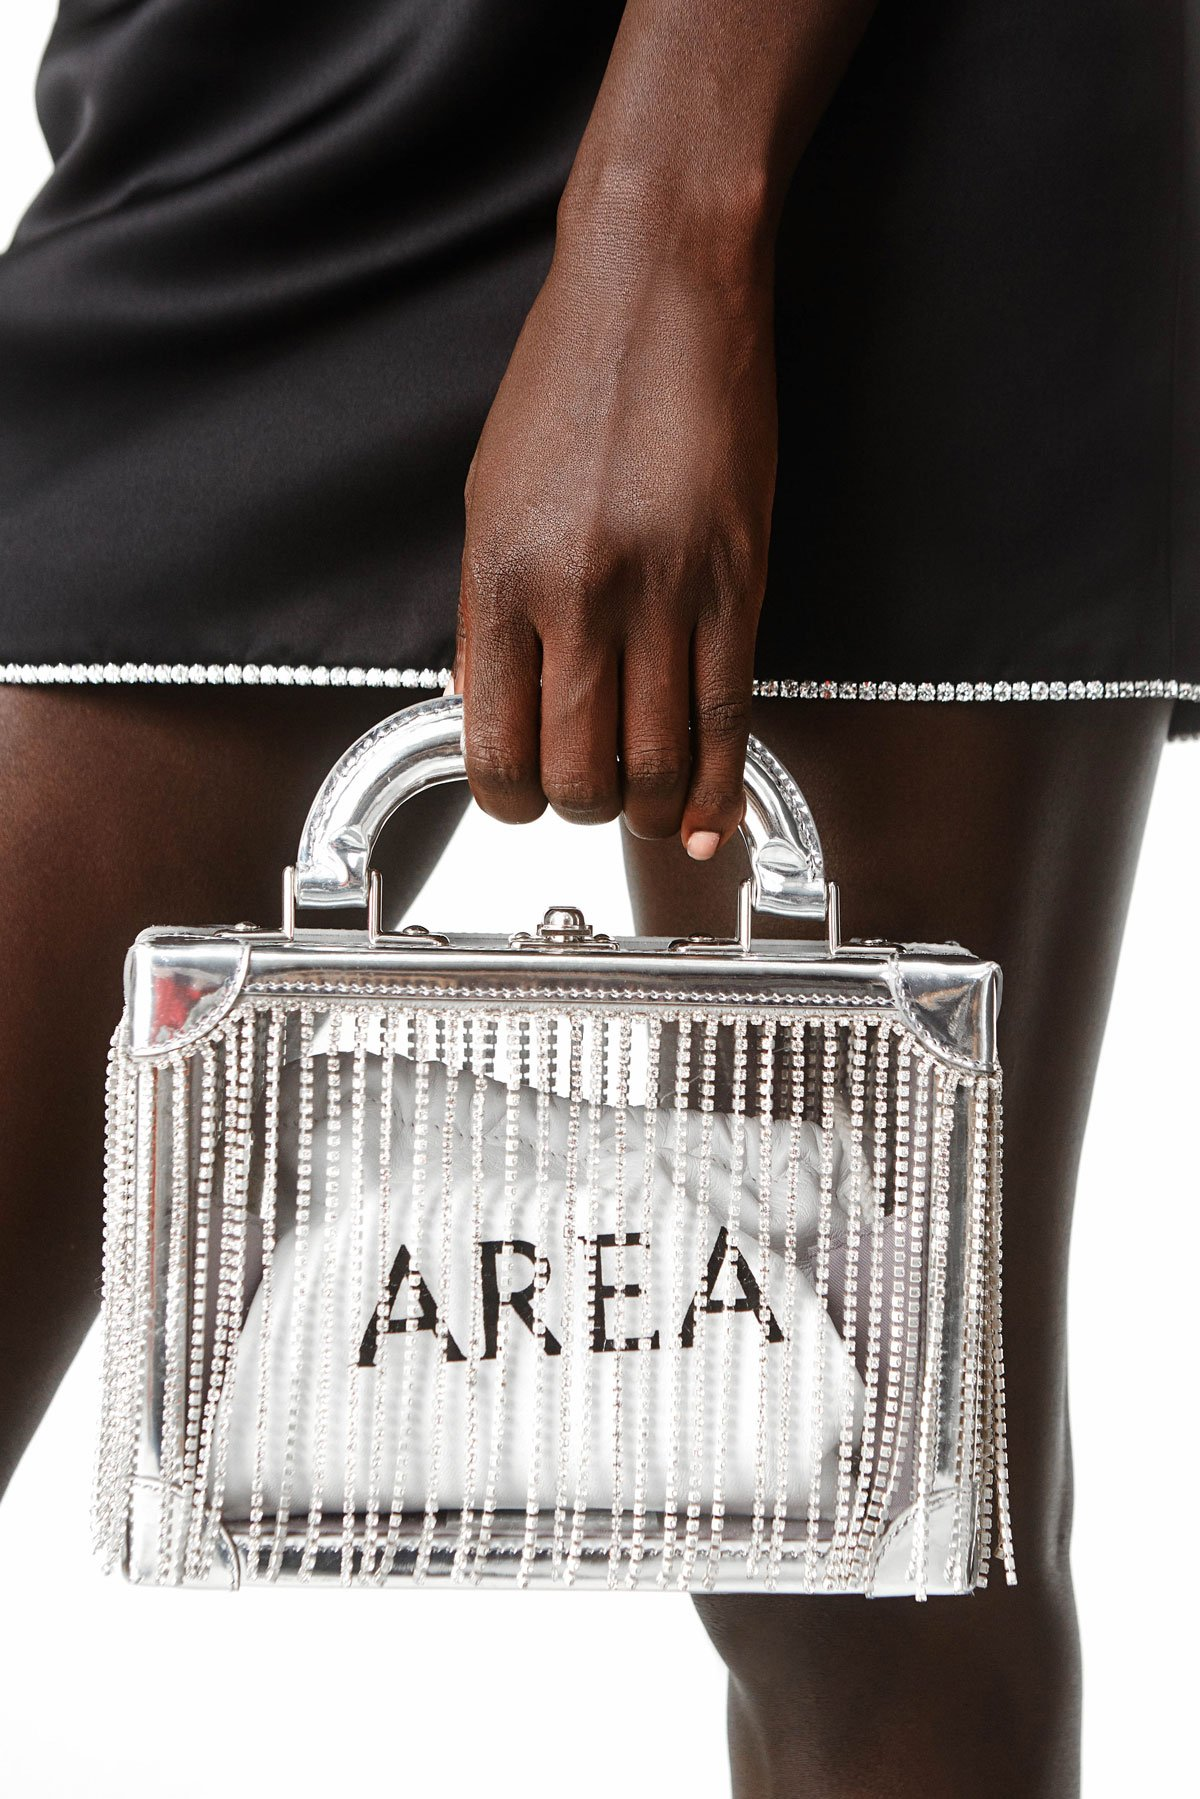 STRUCTURED IN A SHIMMERING SQUARE SILHOUETTE WITH A PALLADIUM BRASS CLOSURE. CRYSTAL-CUT FRINGED DETAILING THROUGHOUT. CRAFTED IN SILVER PATENT CALF LEATHER AND CLEAR PVC. INCLUDES A REMOVABLE CHAIN-LINK STRAP AND A WHITE LOGO-EMBOSSED POCHETTE.  MADE IN COLLABORATION WITH ITALIAN LEATHER HERITAGE HOUSE BERTONI 1949.